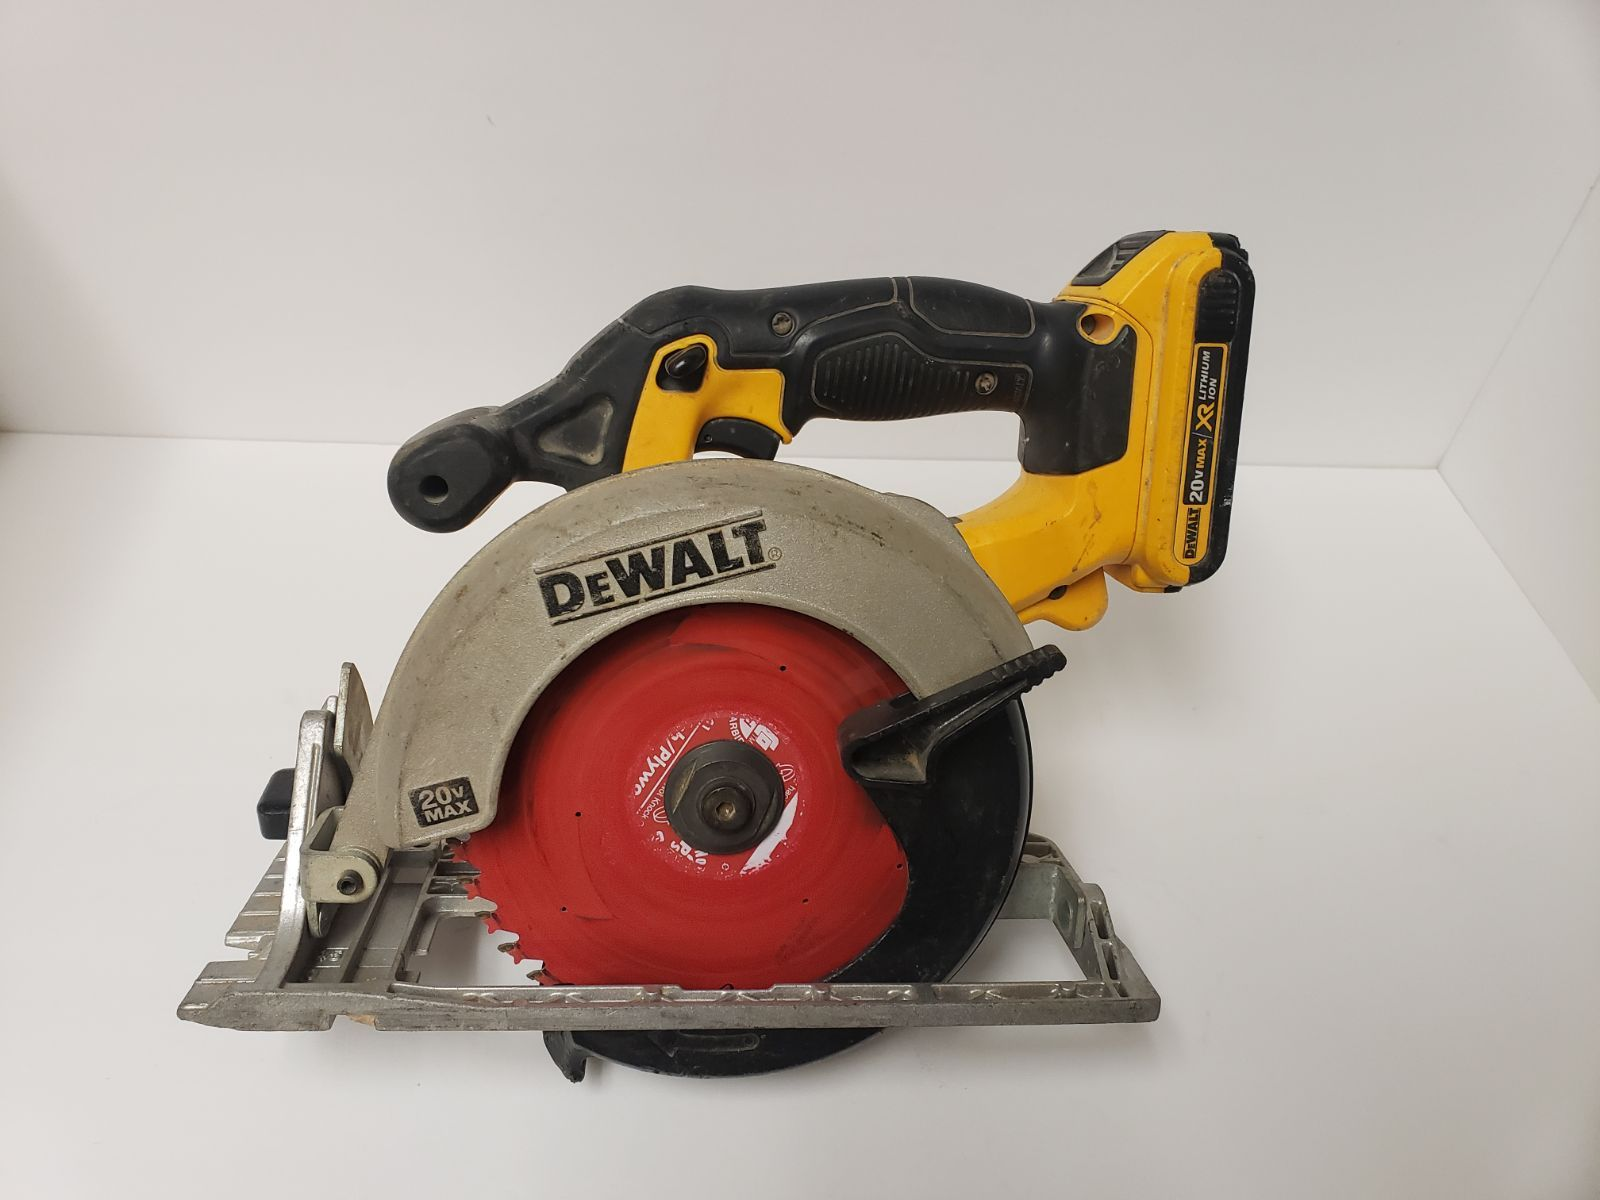 Dewalt Dcs391 20v 6 1 2 Cordless Handheld Circular Saw With Blade Tool And Battery Only Condition Is Used Dewalt Dcs391 20v Dewalt Dewalt Tools Cordless